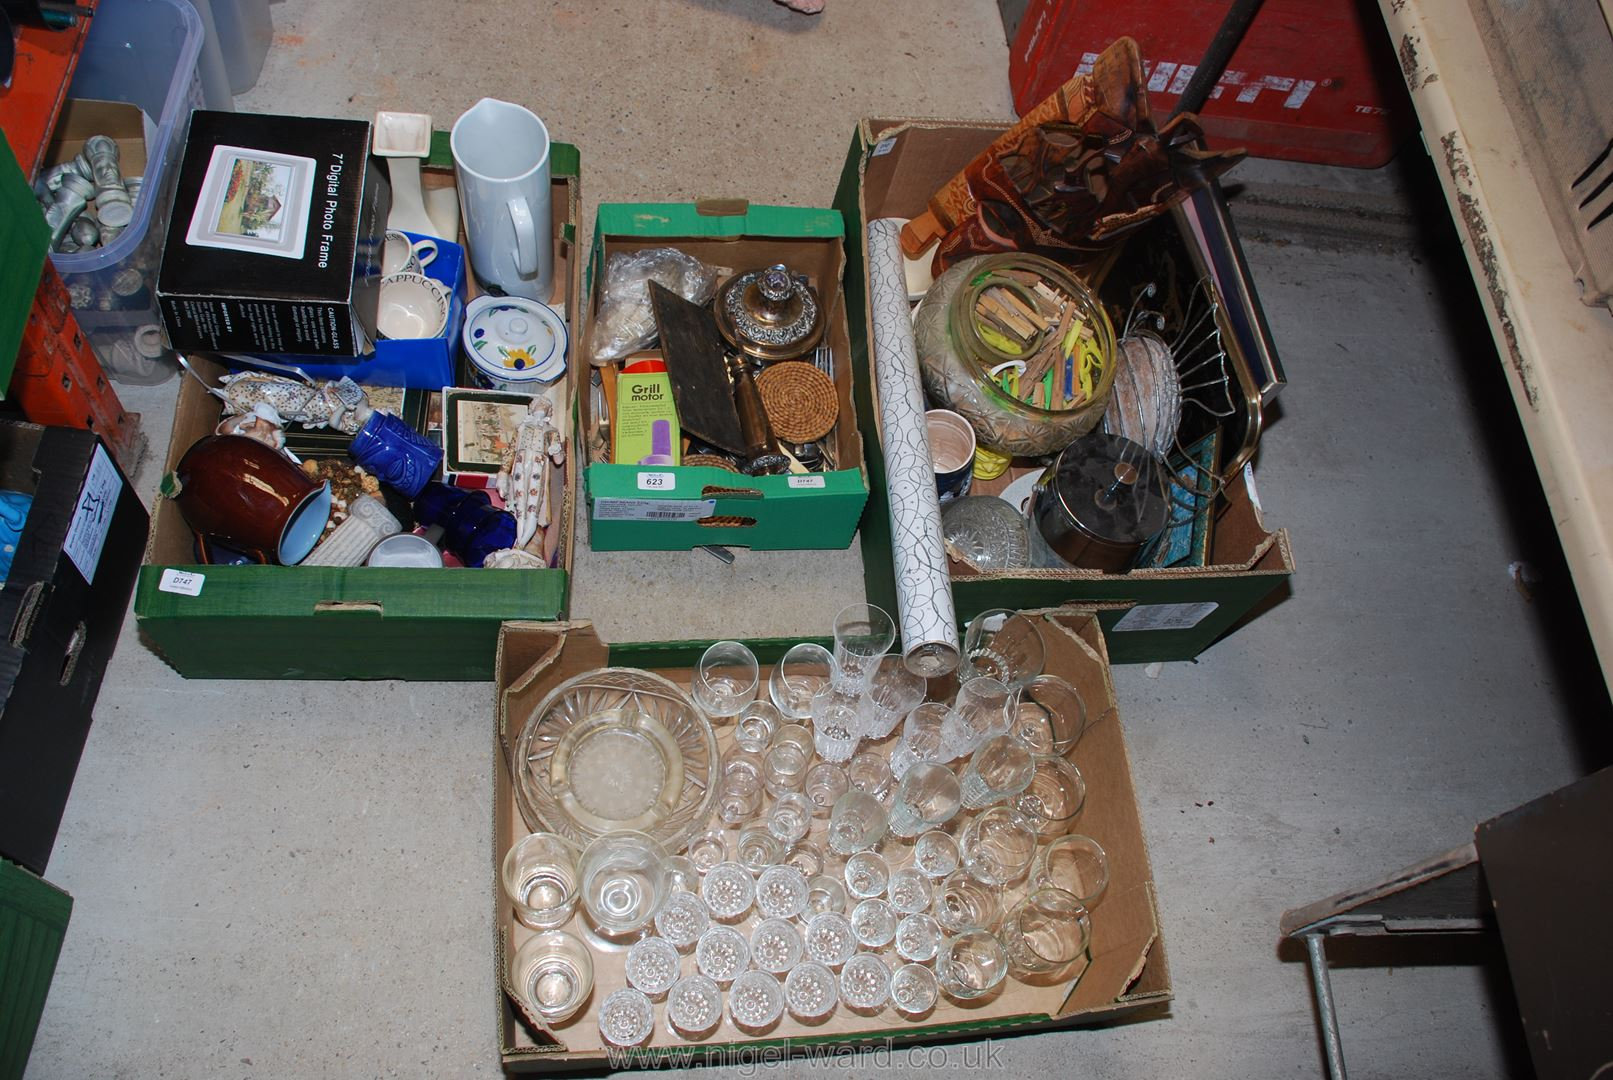 Four boxes of various drinking glasses, cutlery, china, glassware and a digi photo frame.